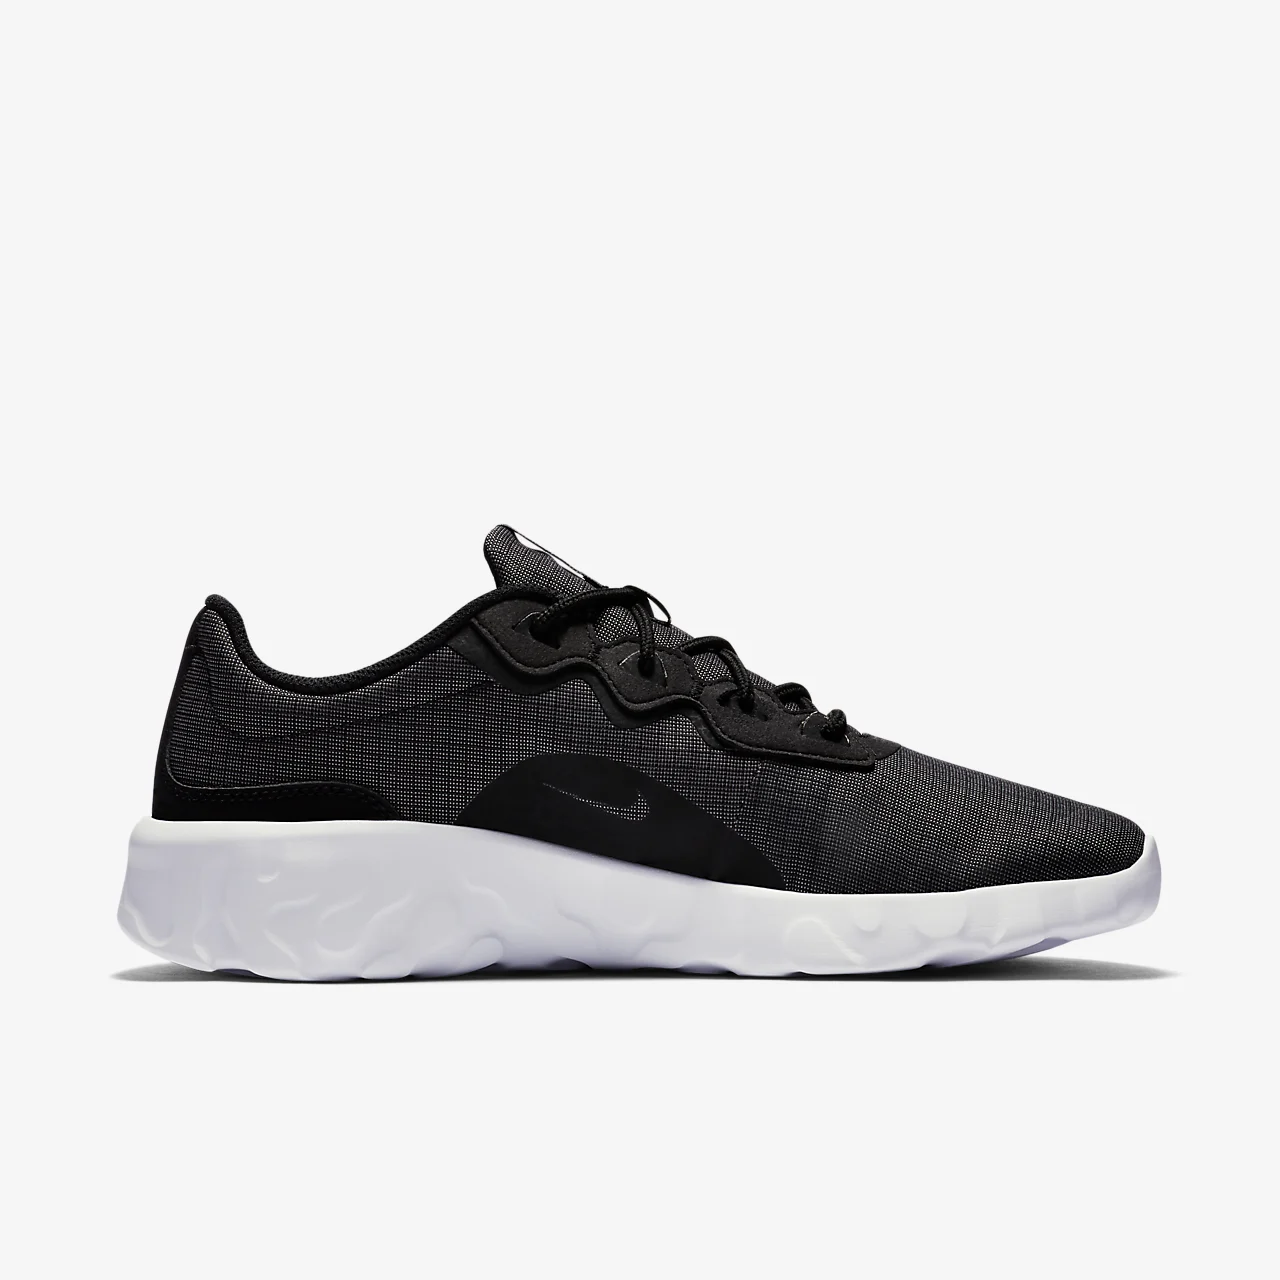 유럽직배송 나이키 NIKE Nike Explore Strada Men's Shoe CD7093-001